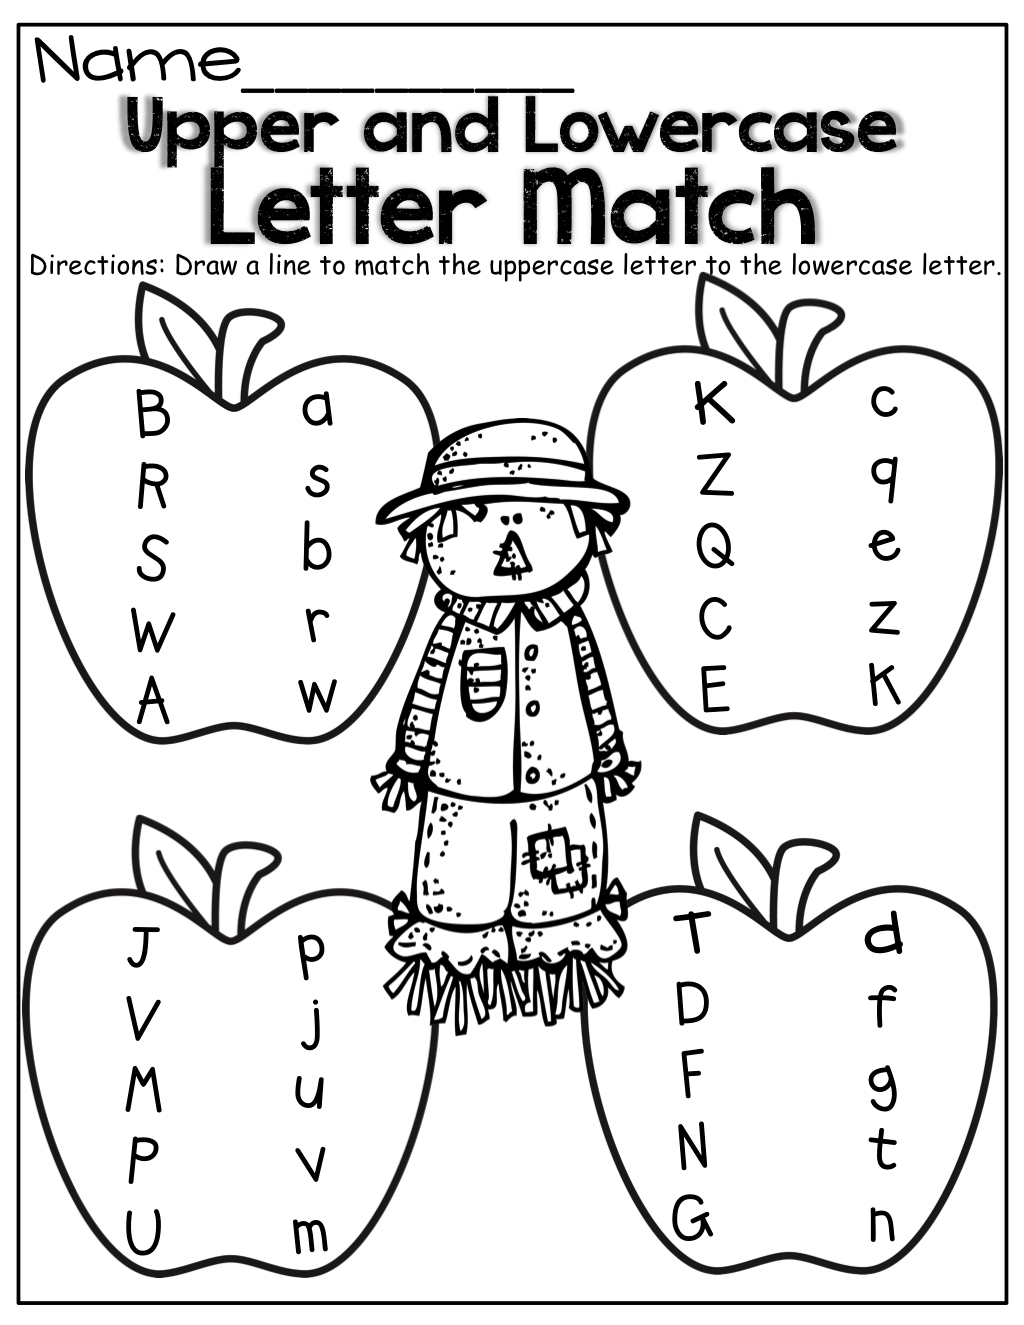 Worksheets Upper And Lowercase Letters Worksheets upper and lowercase letter match kinderland collaborative match